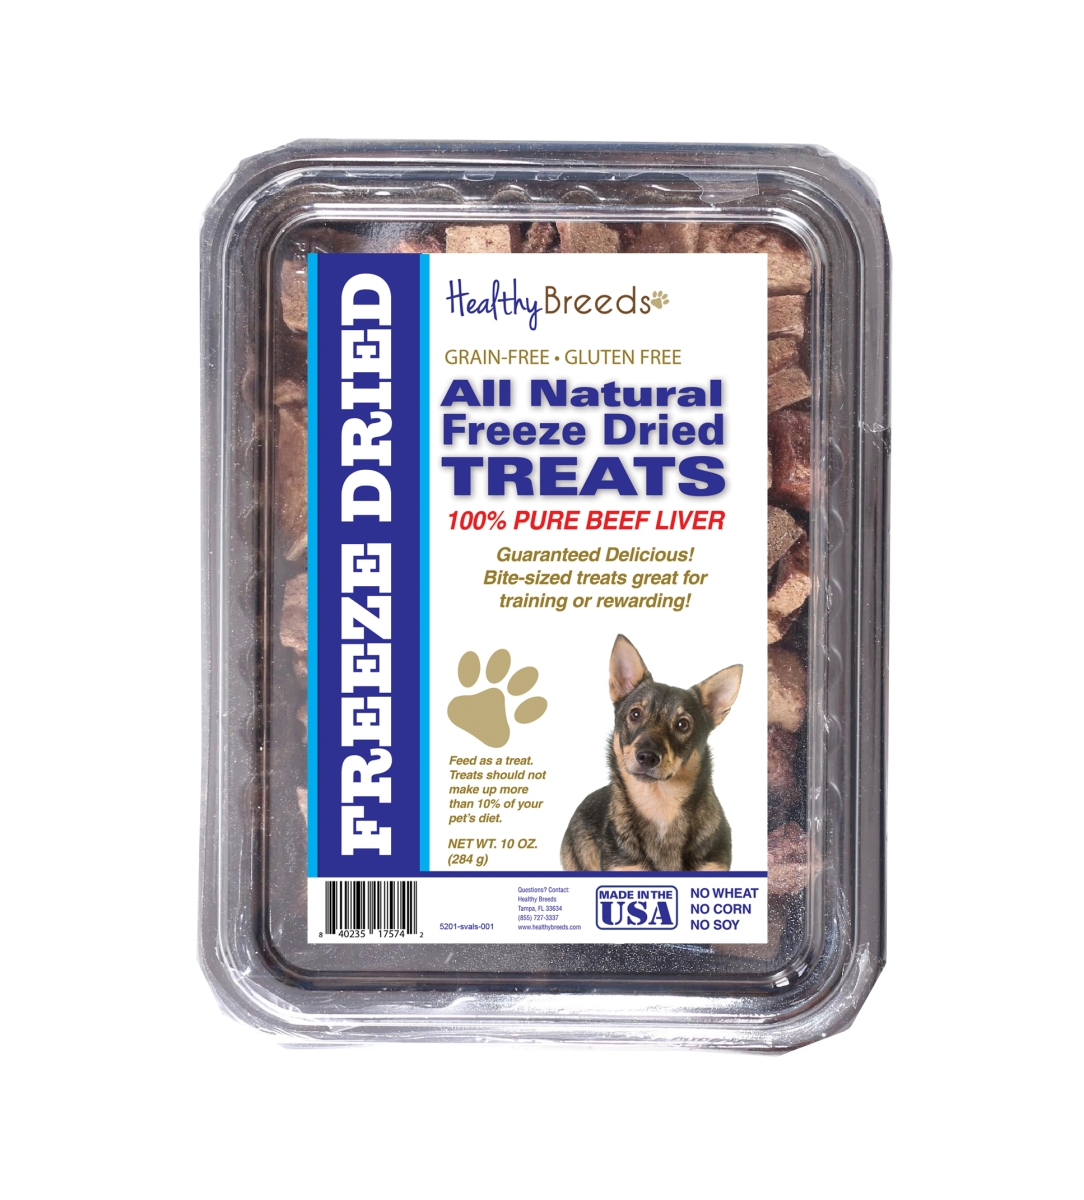 Healthy Breeds 840235175742 10 oz Swedish Vallhund All Natural Freeze Dried Treats Beef Liver